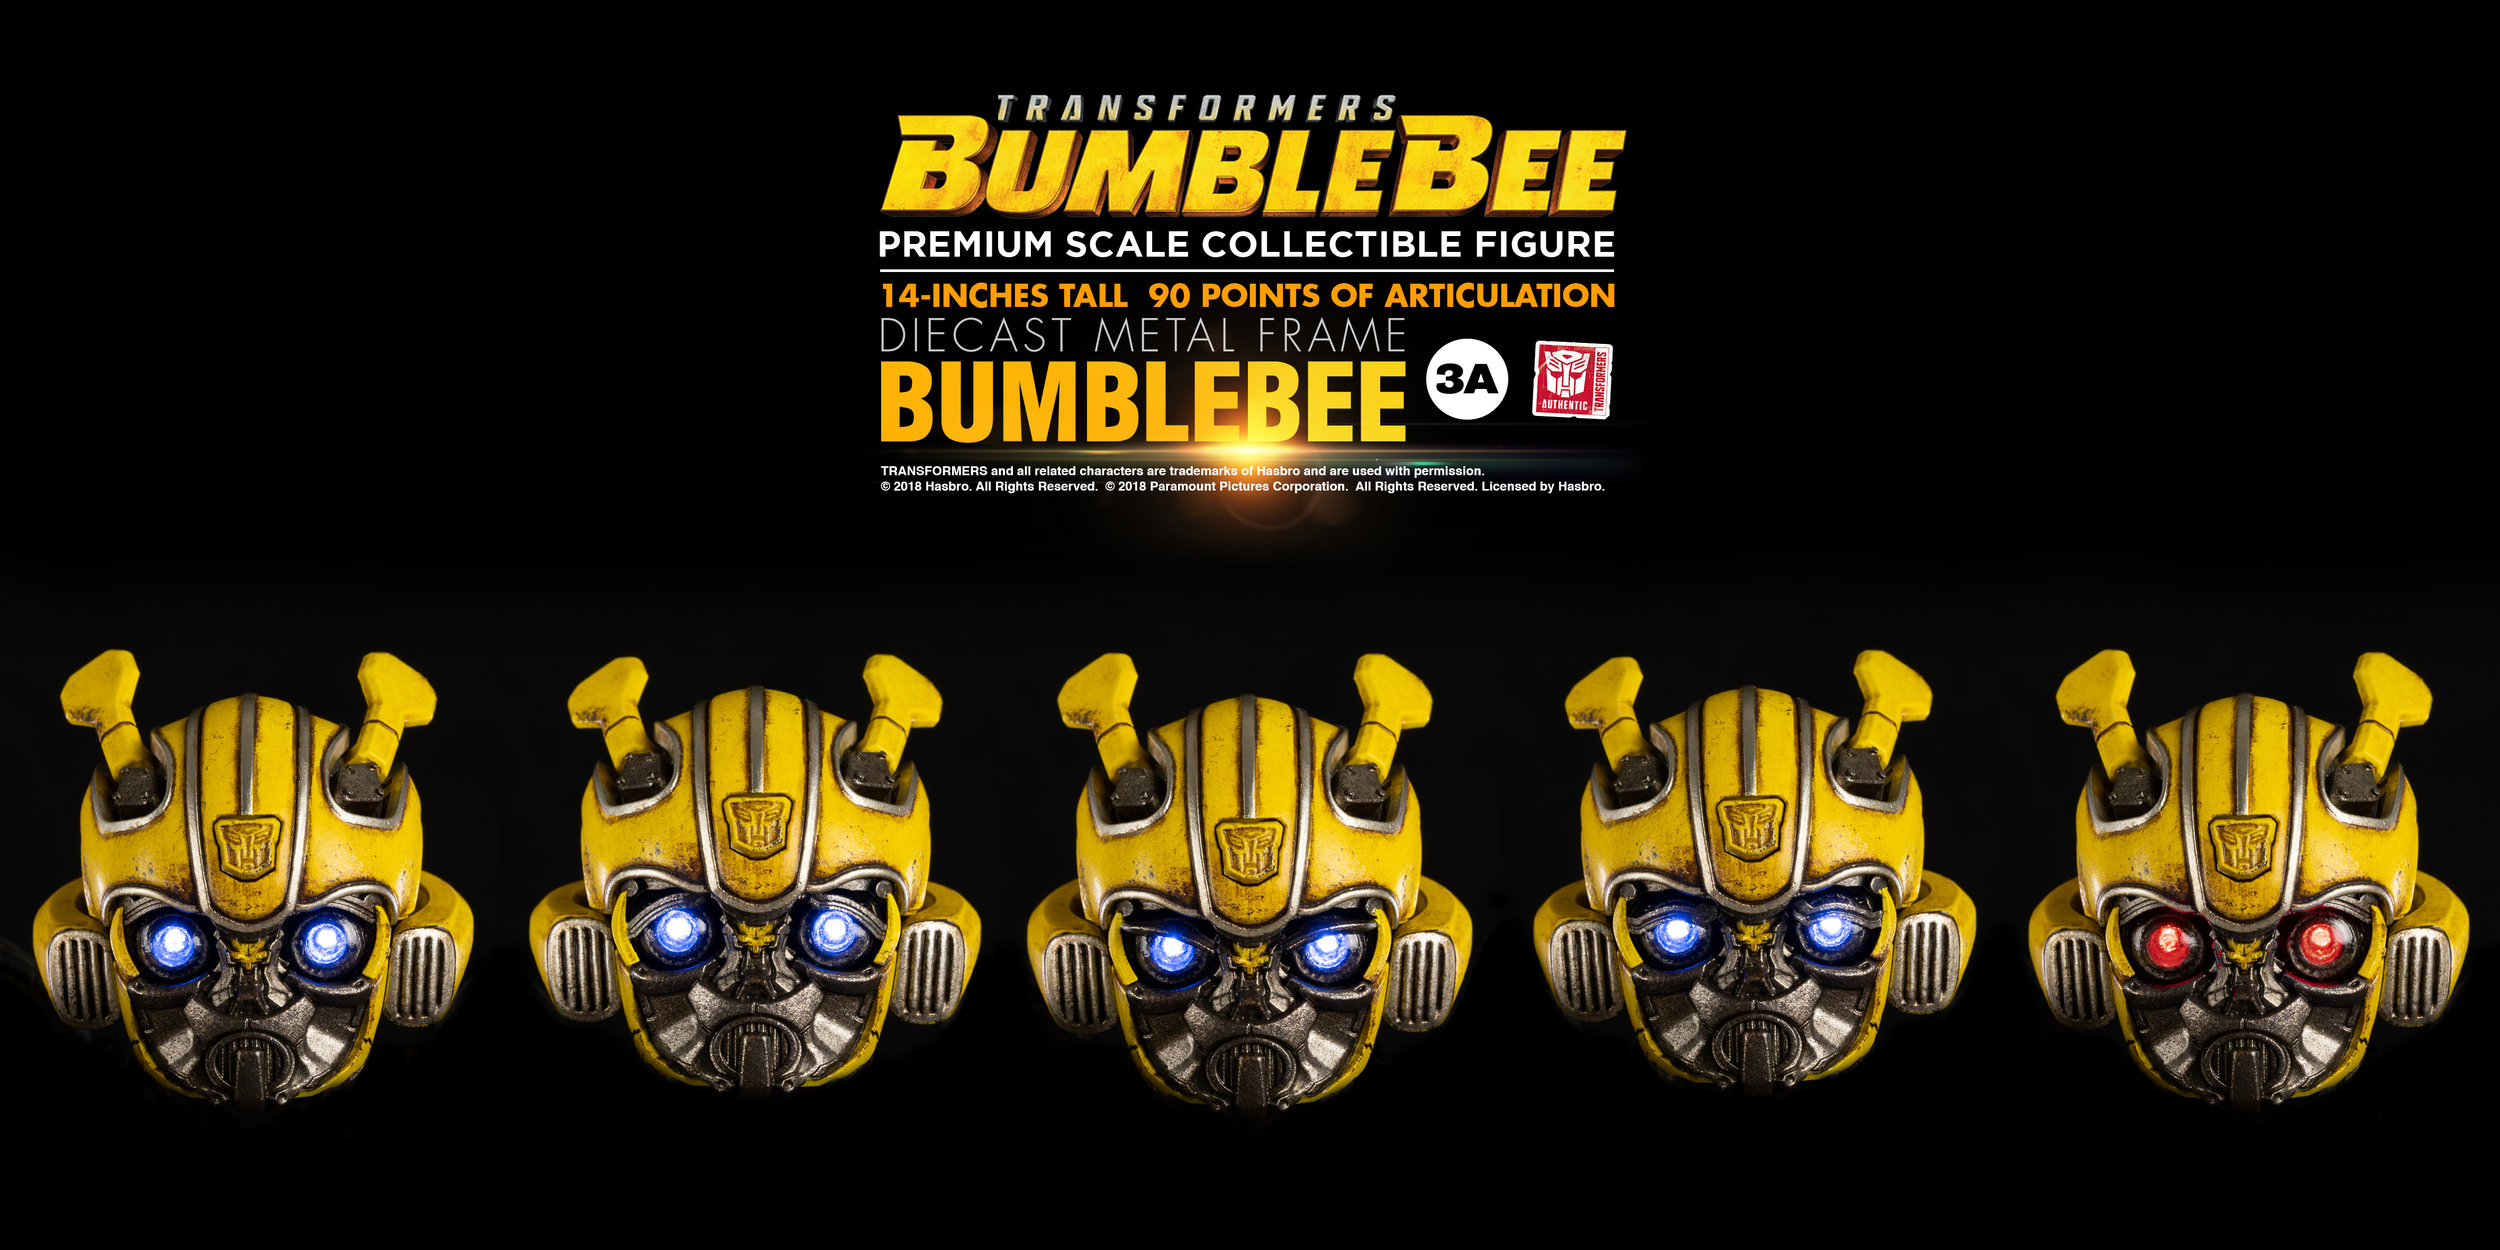 Bumblebee_ENG_PM_eyes-shape.jpg